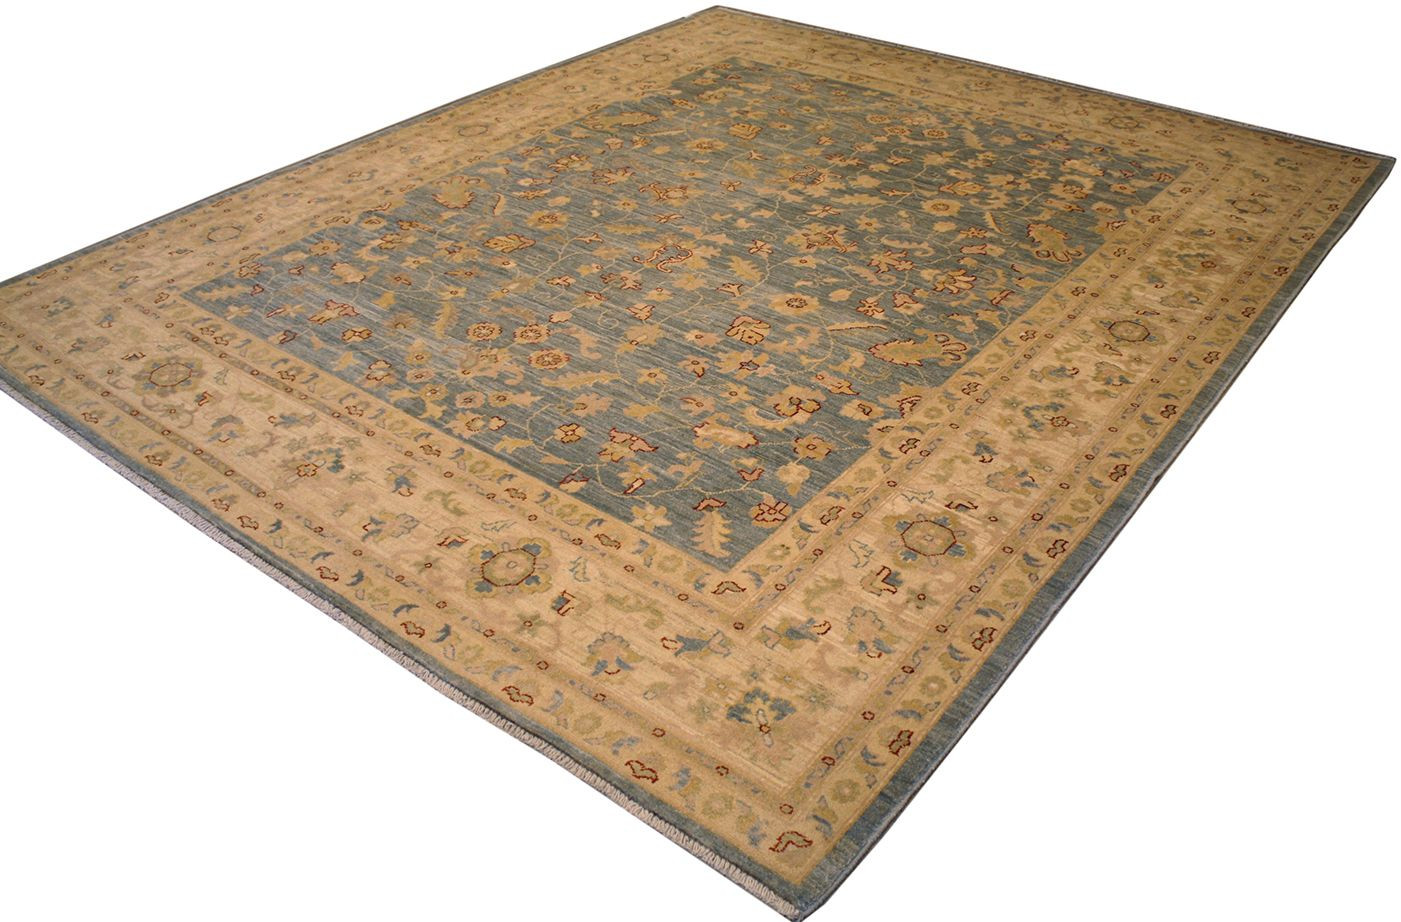 Rug Pads for Hardwood Floors Of 8x9 9 Peshawar Floral Motif oriental Rug and oriental Regarding 8x9 9 Peshawar Wool area Rug Main Street oriental Rugs